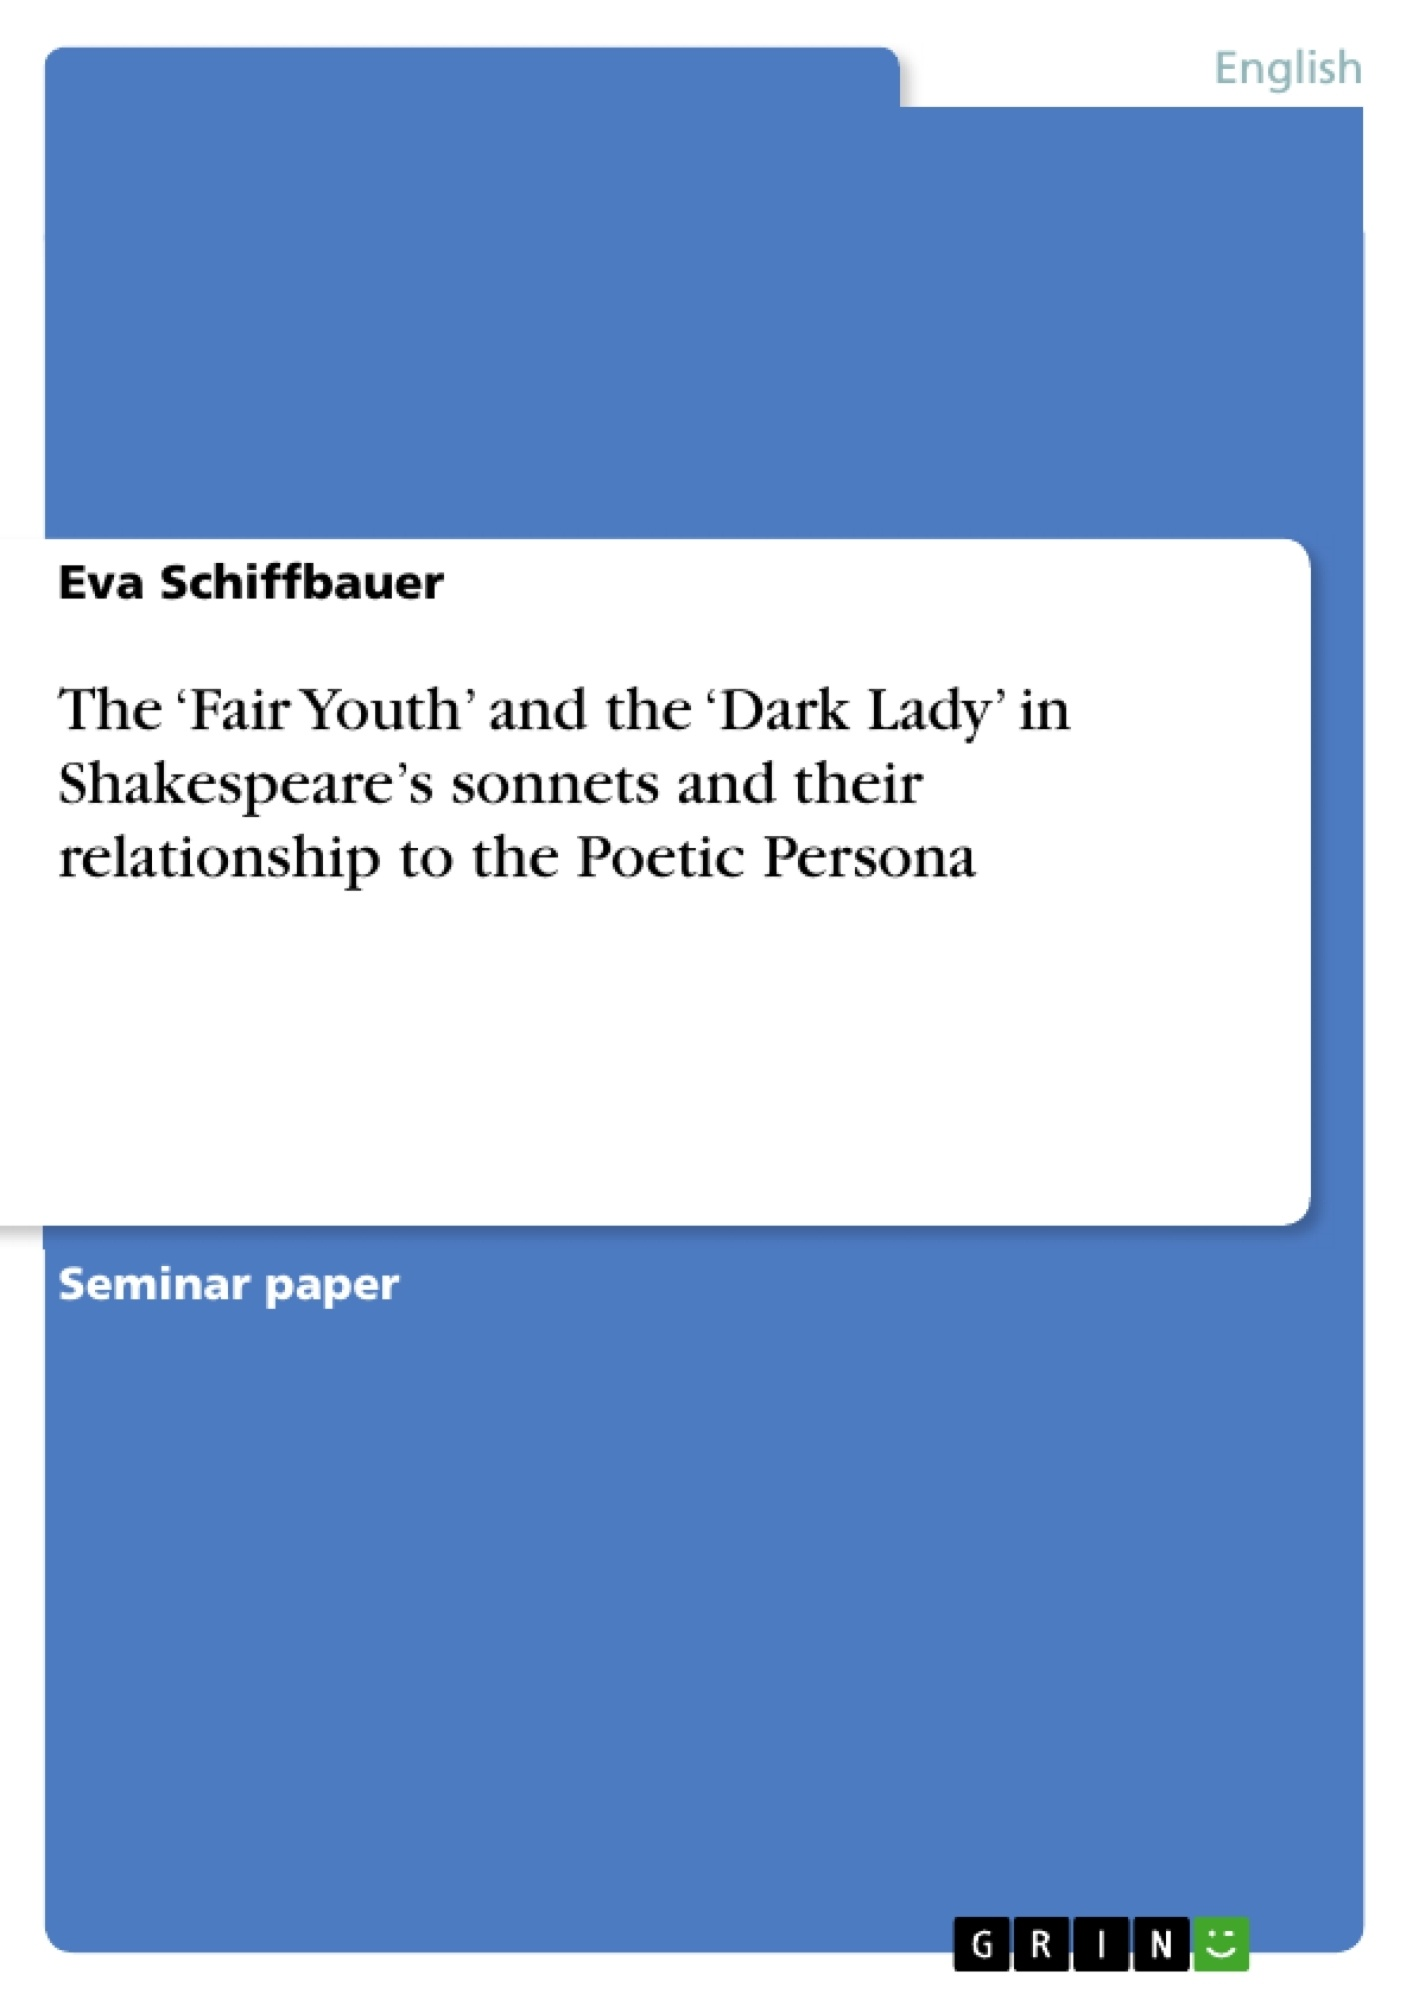 the fair youth and the dark lady in shakespeare s sonnets and upload your own papers earn money and win an iphone 7